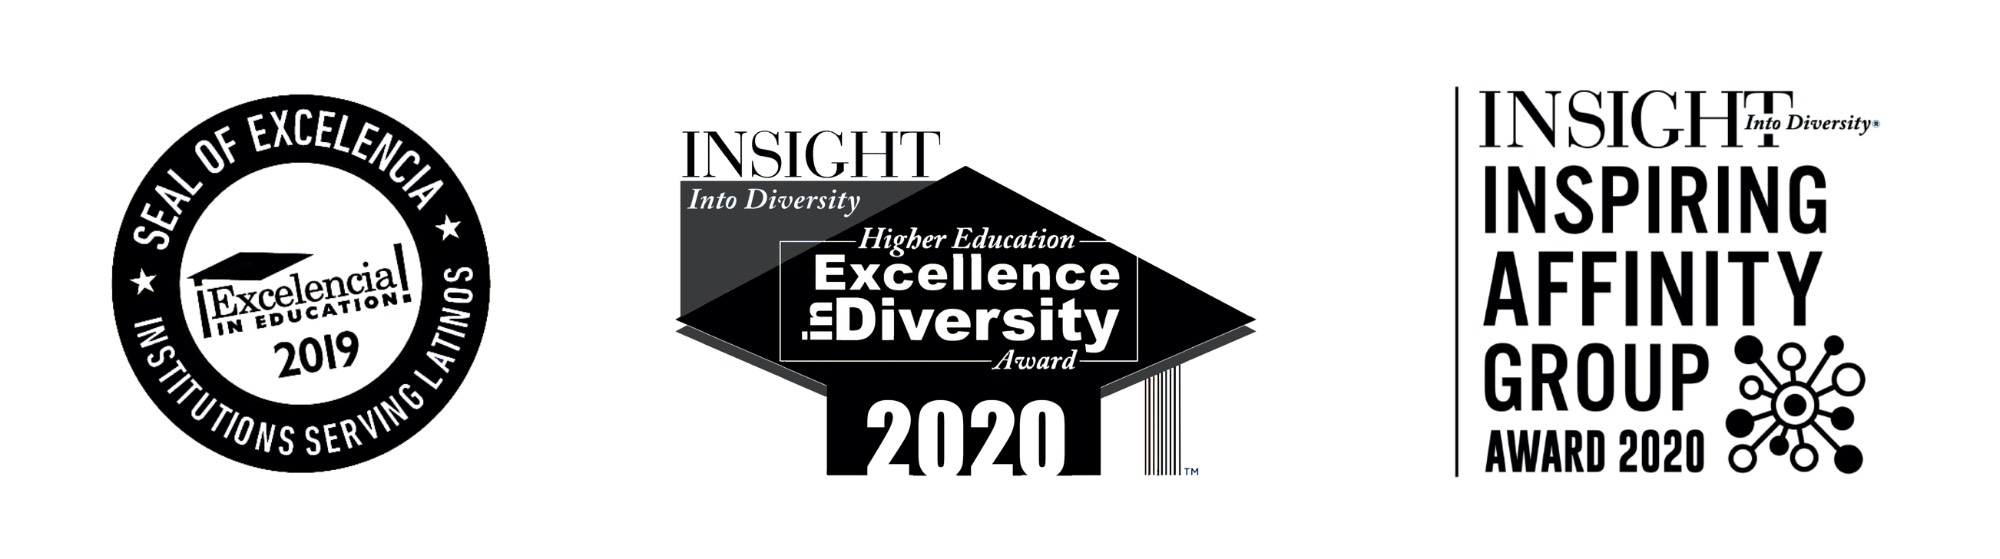 2019 Seal of Excelencia, 2020 Insight Into Diversity Higher Edcuation Excellence in Diversity Award, 2020 Insight Into Diversity Inspiring Affinity Group Award